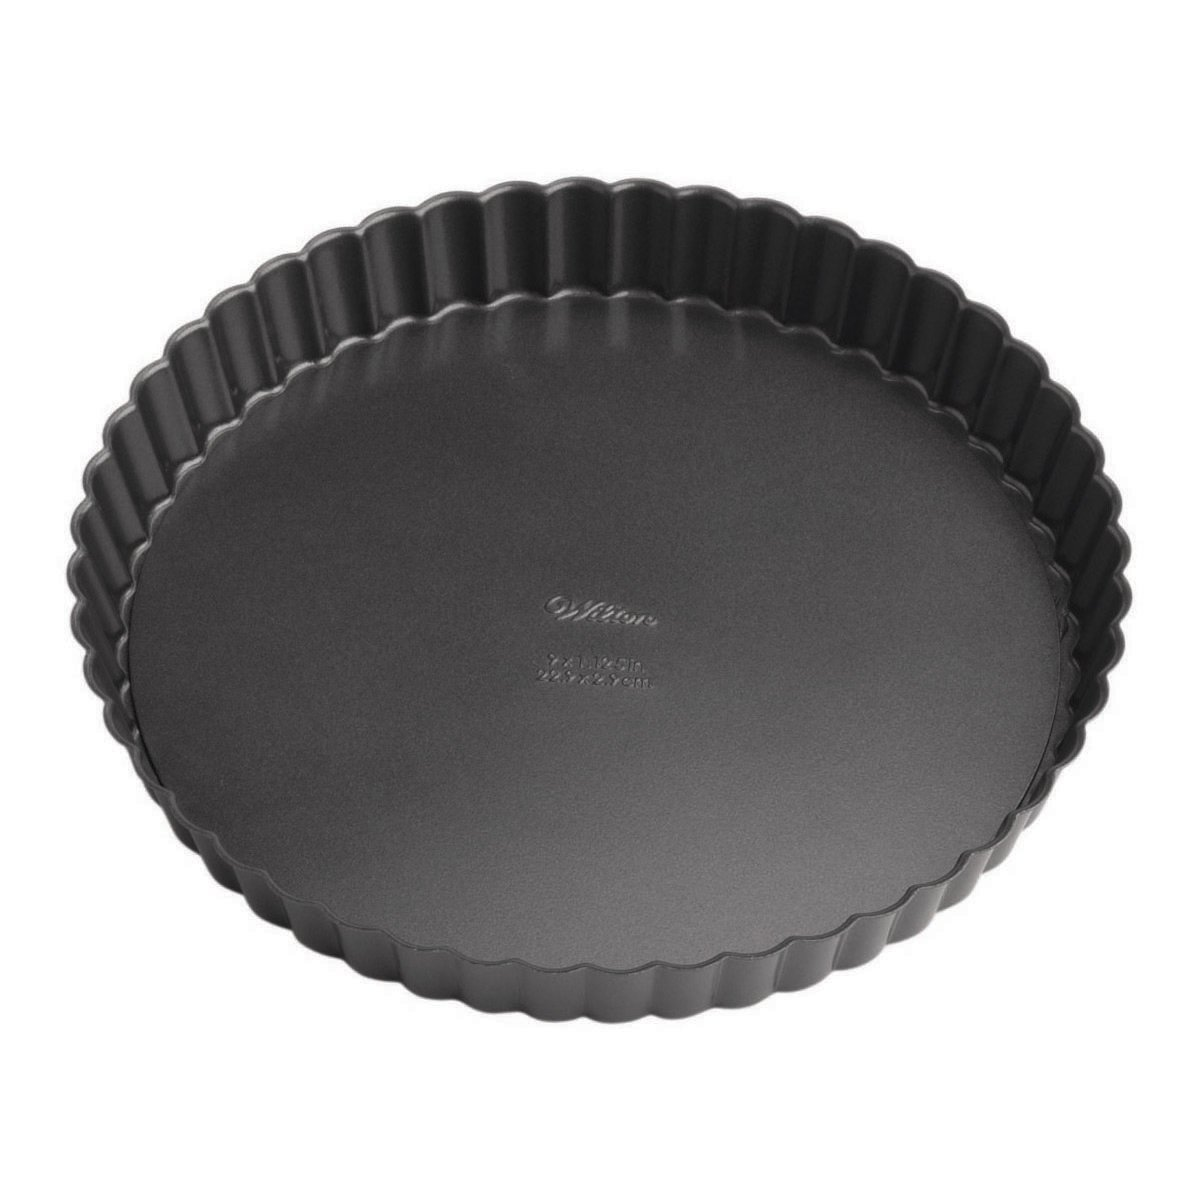 Wilton Perfect Results Premium Non-Stick Bakeware Round Tart and Quiche Pans, Sunday Brunch May Never be the Same Again, Fluted Edges Add a Touch of Flair, 9-Inch